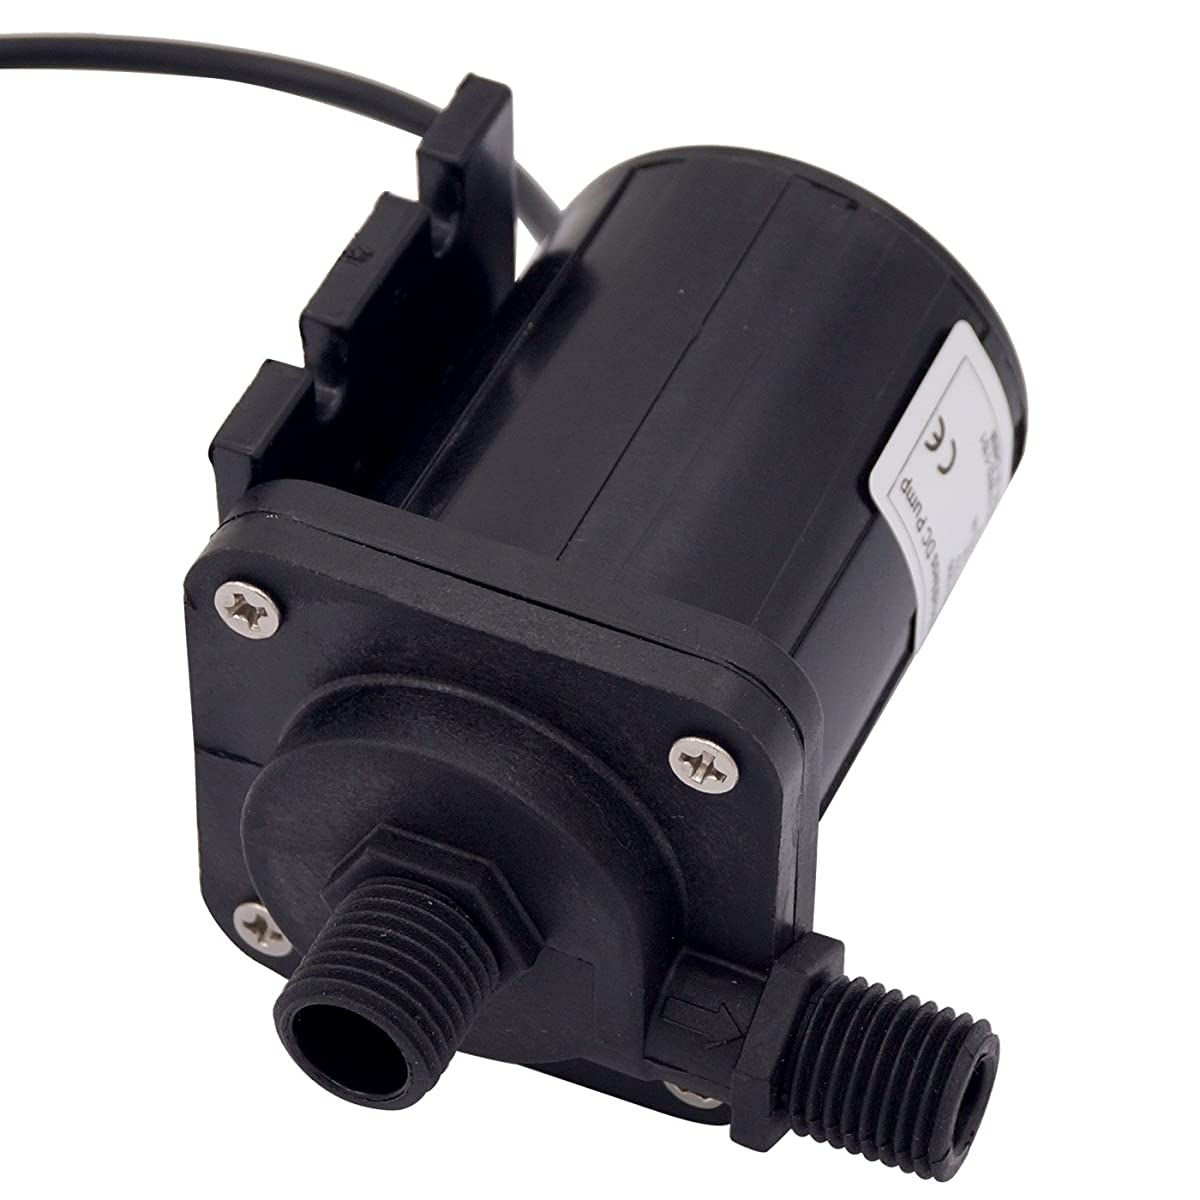 Aubig DC 12V Brushless Magnetic Drive Centrifugal Submersible Oil Water Pump 500L/H 5M/16ft